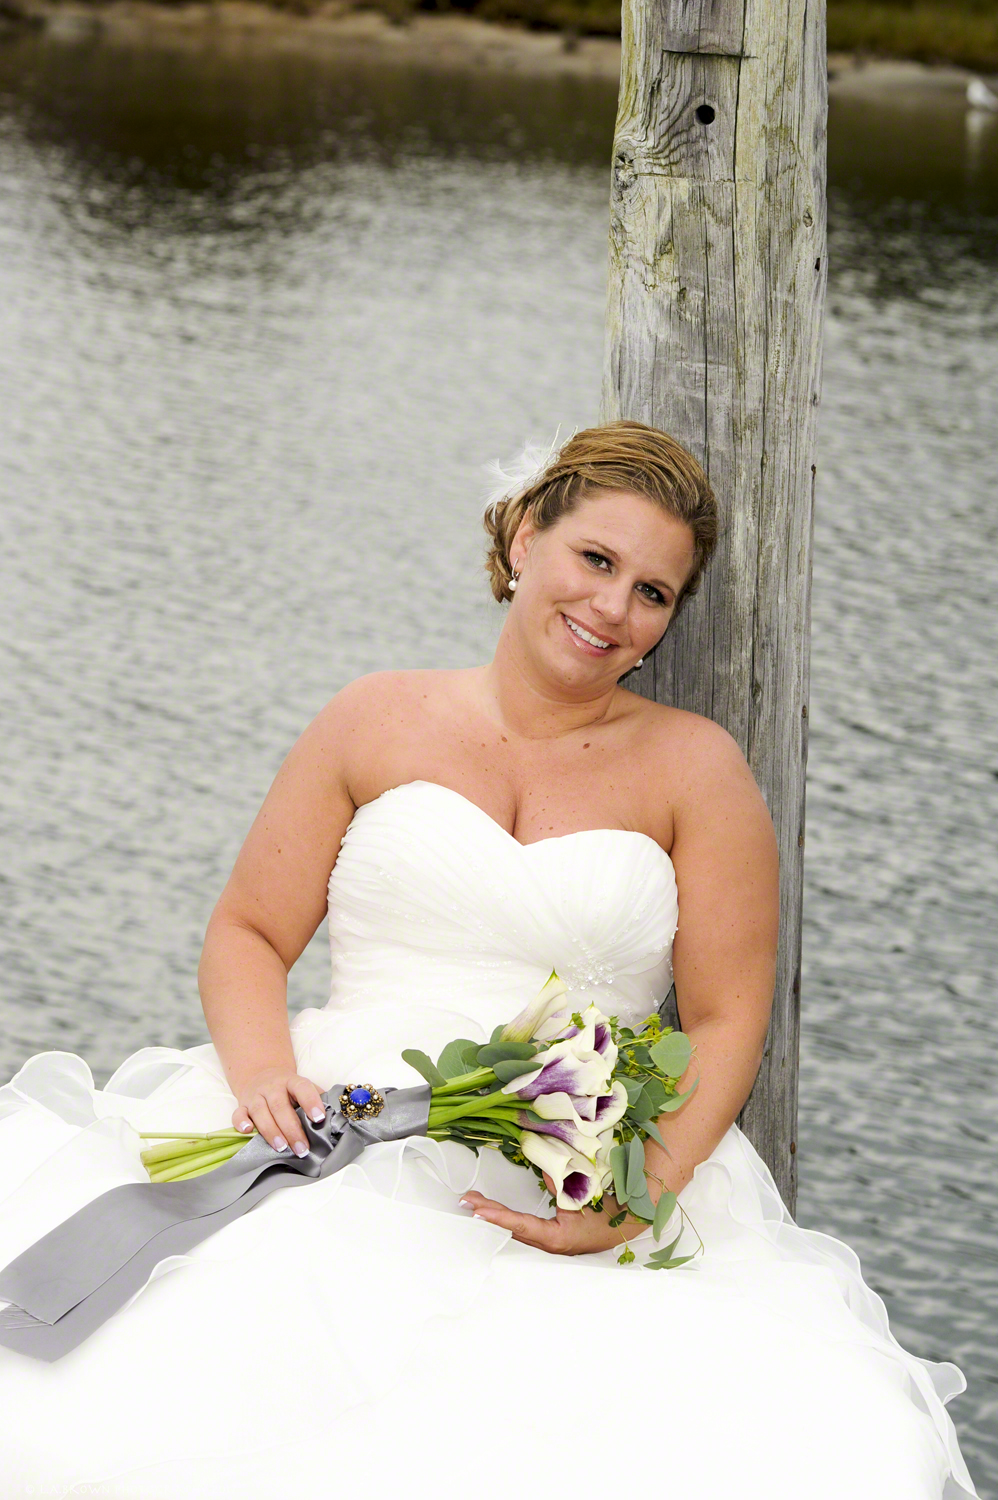 Wedding Web-7.jpg